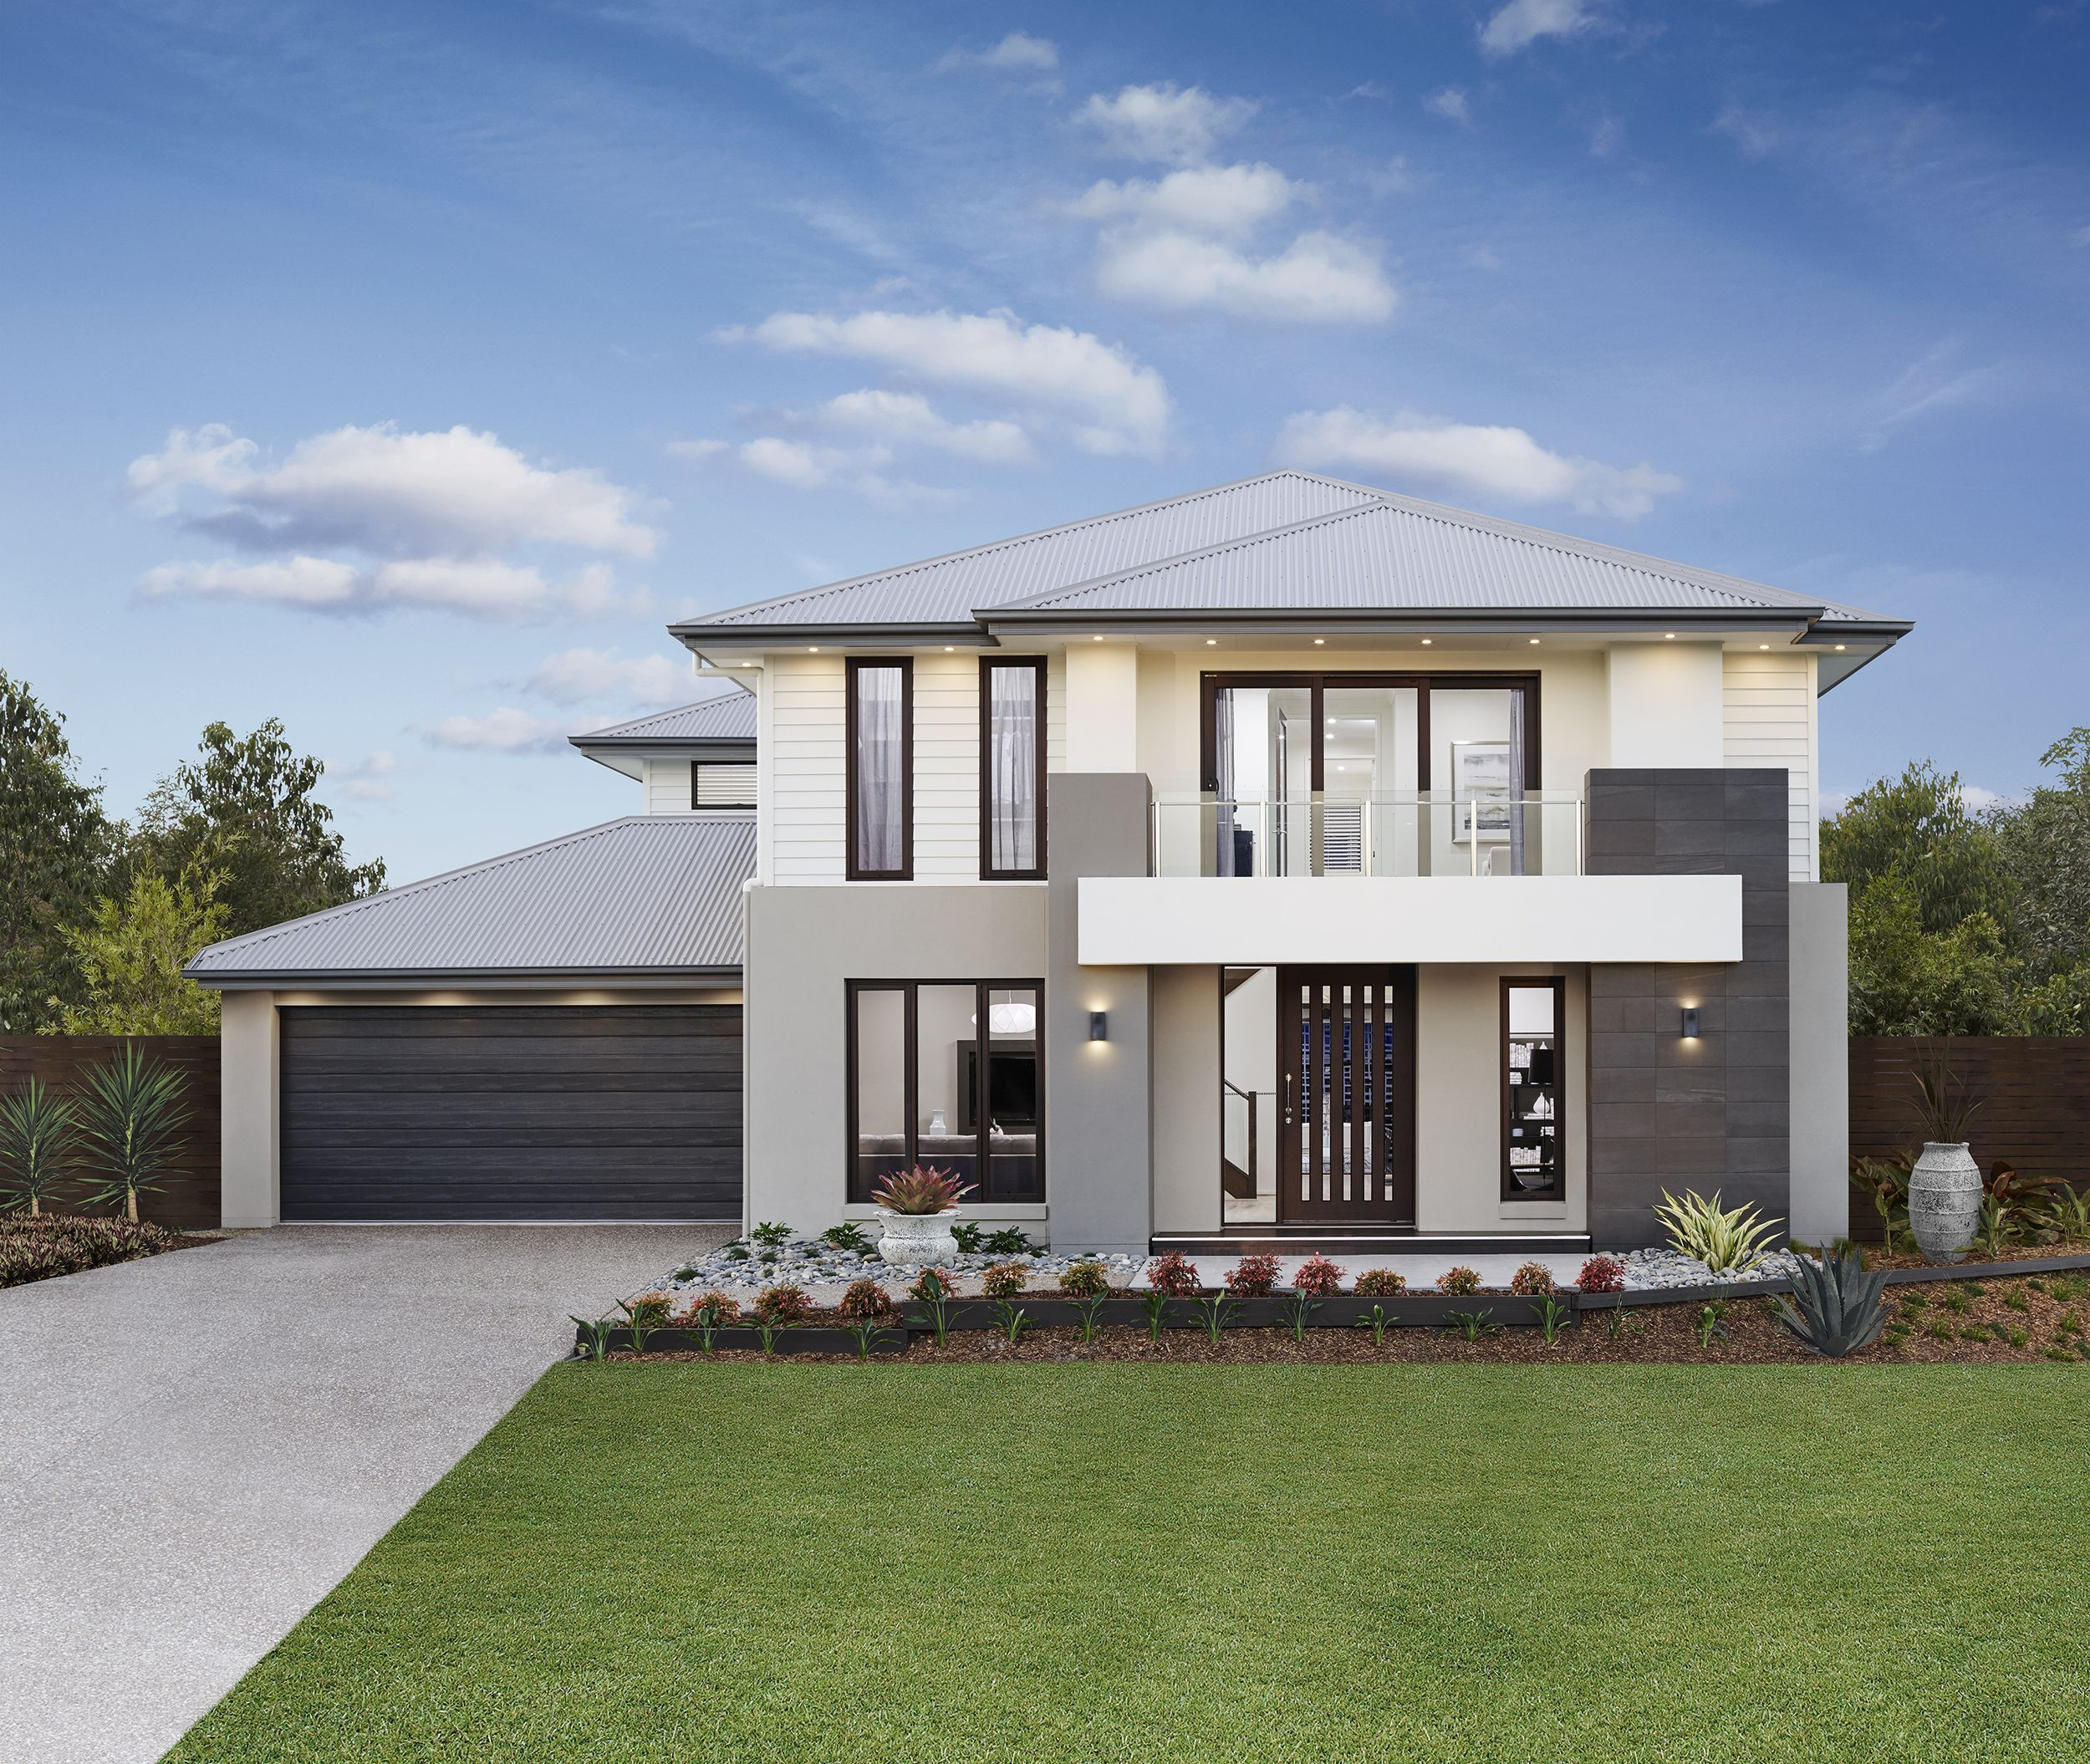 Great Search And Compare New Home Designs In Victoria   Prices, Floorplans,  Inclusions, Facades, Display Homes And More. IBuildNew   The Intelligent  Way To Find ...